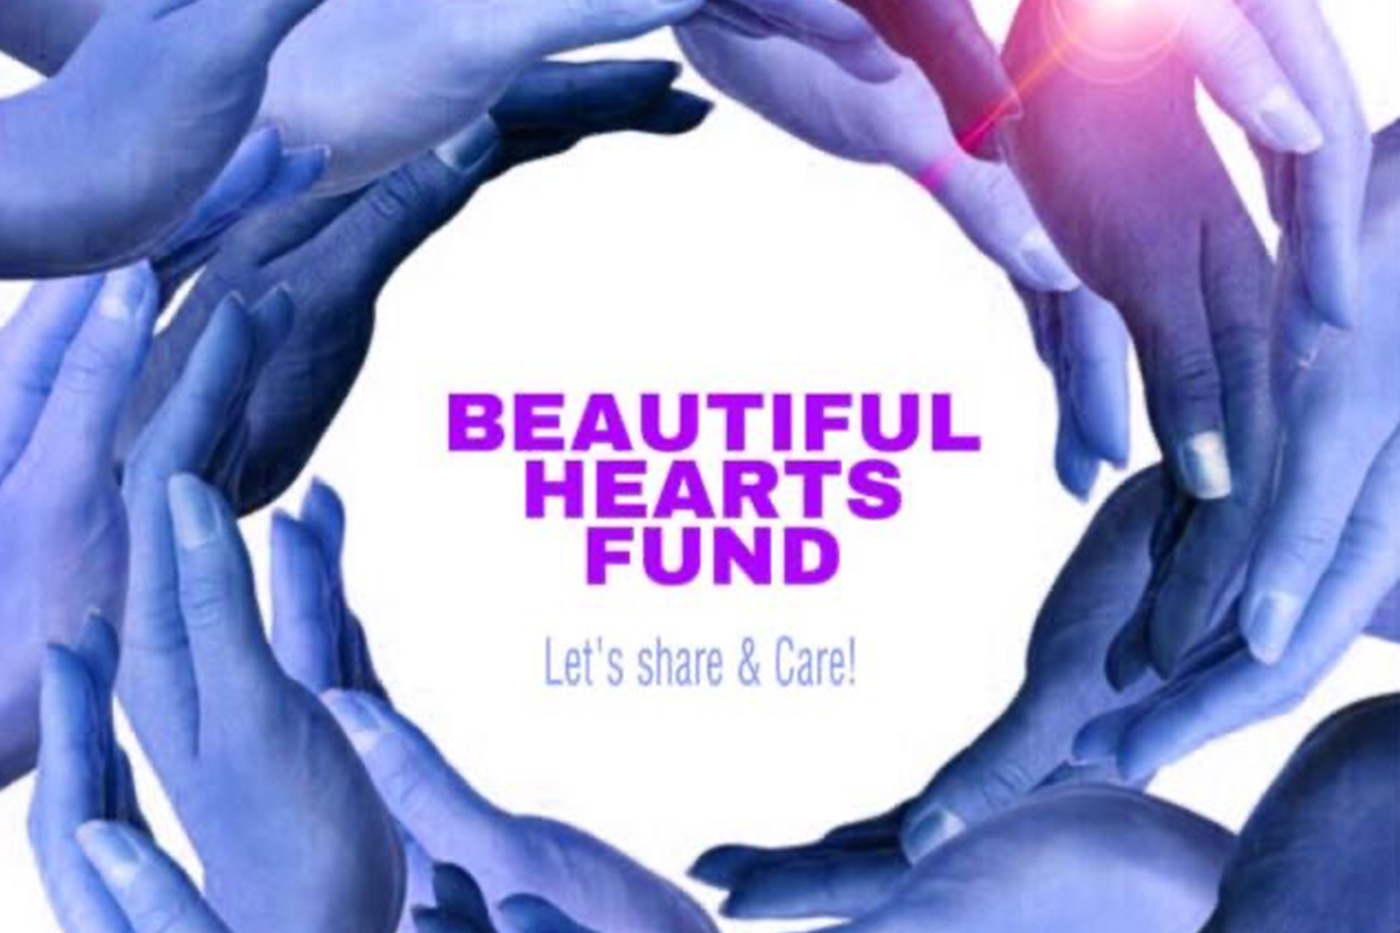 Industry leaders launch Beautiful Hearts Fund